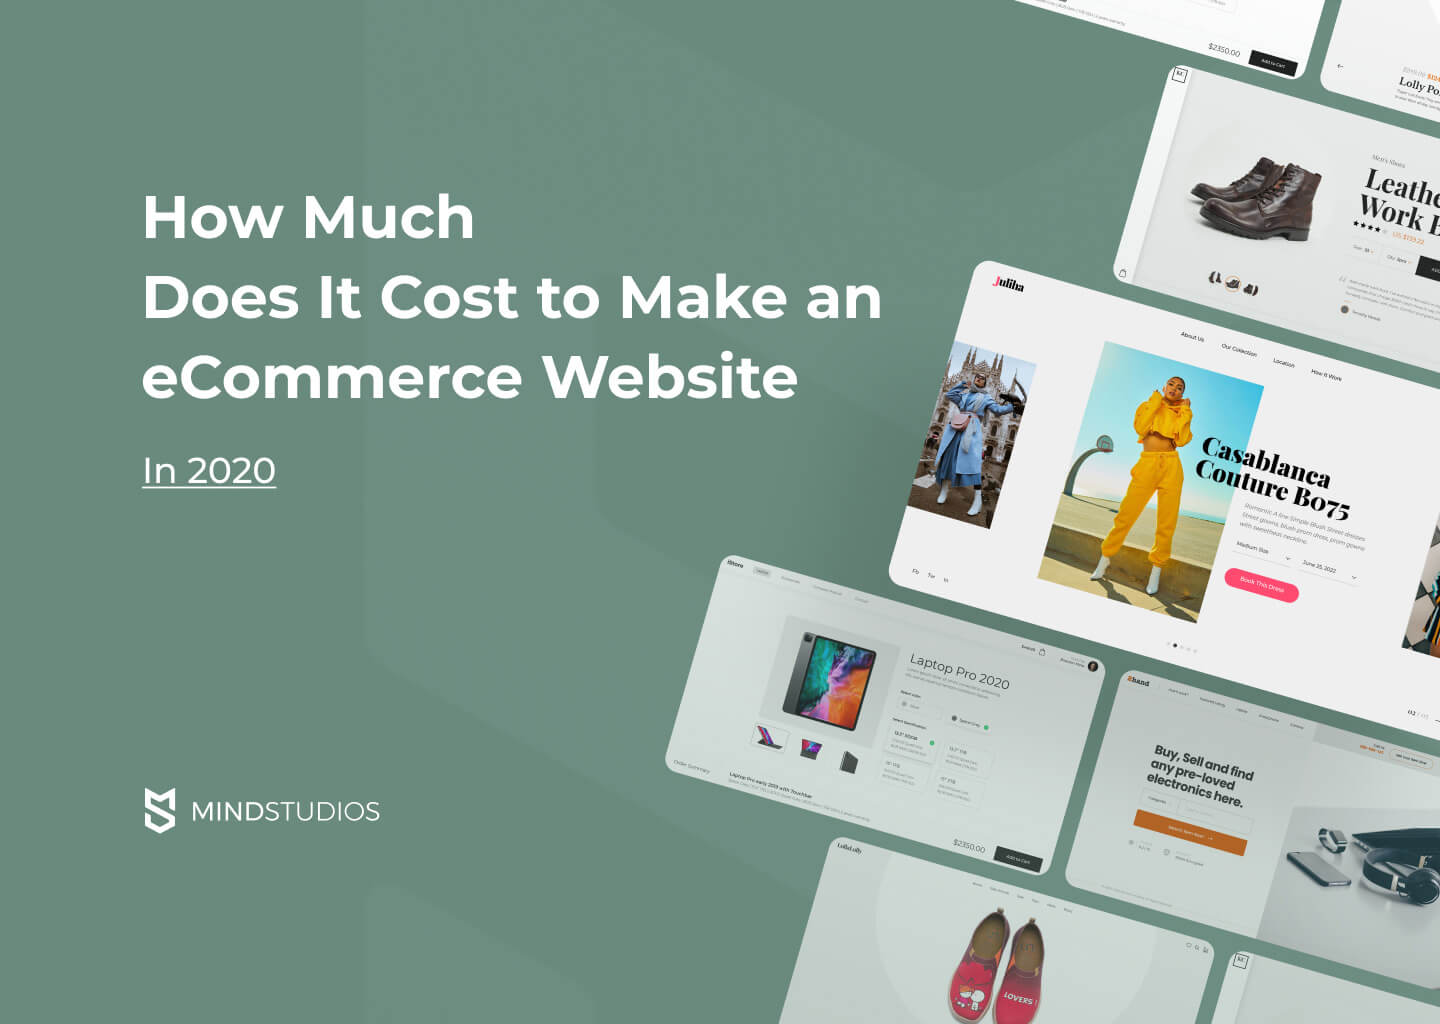 How Much Does It Cost to Make an Ecommerce Website in 2020?